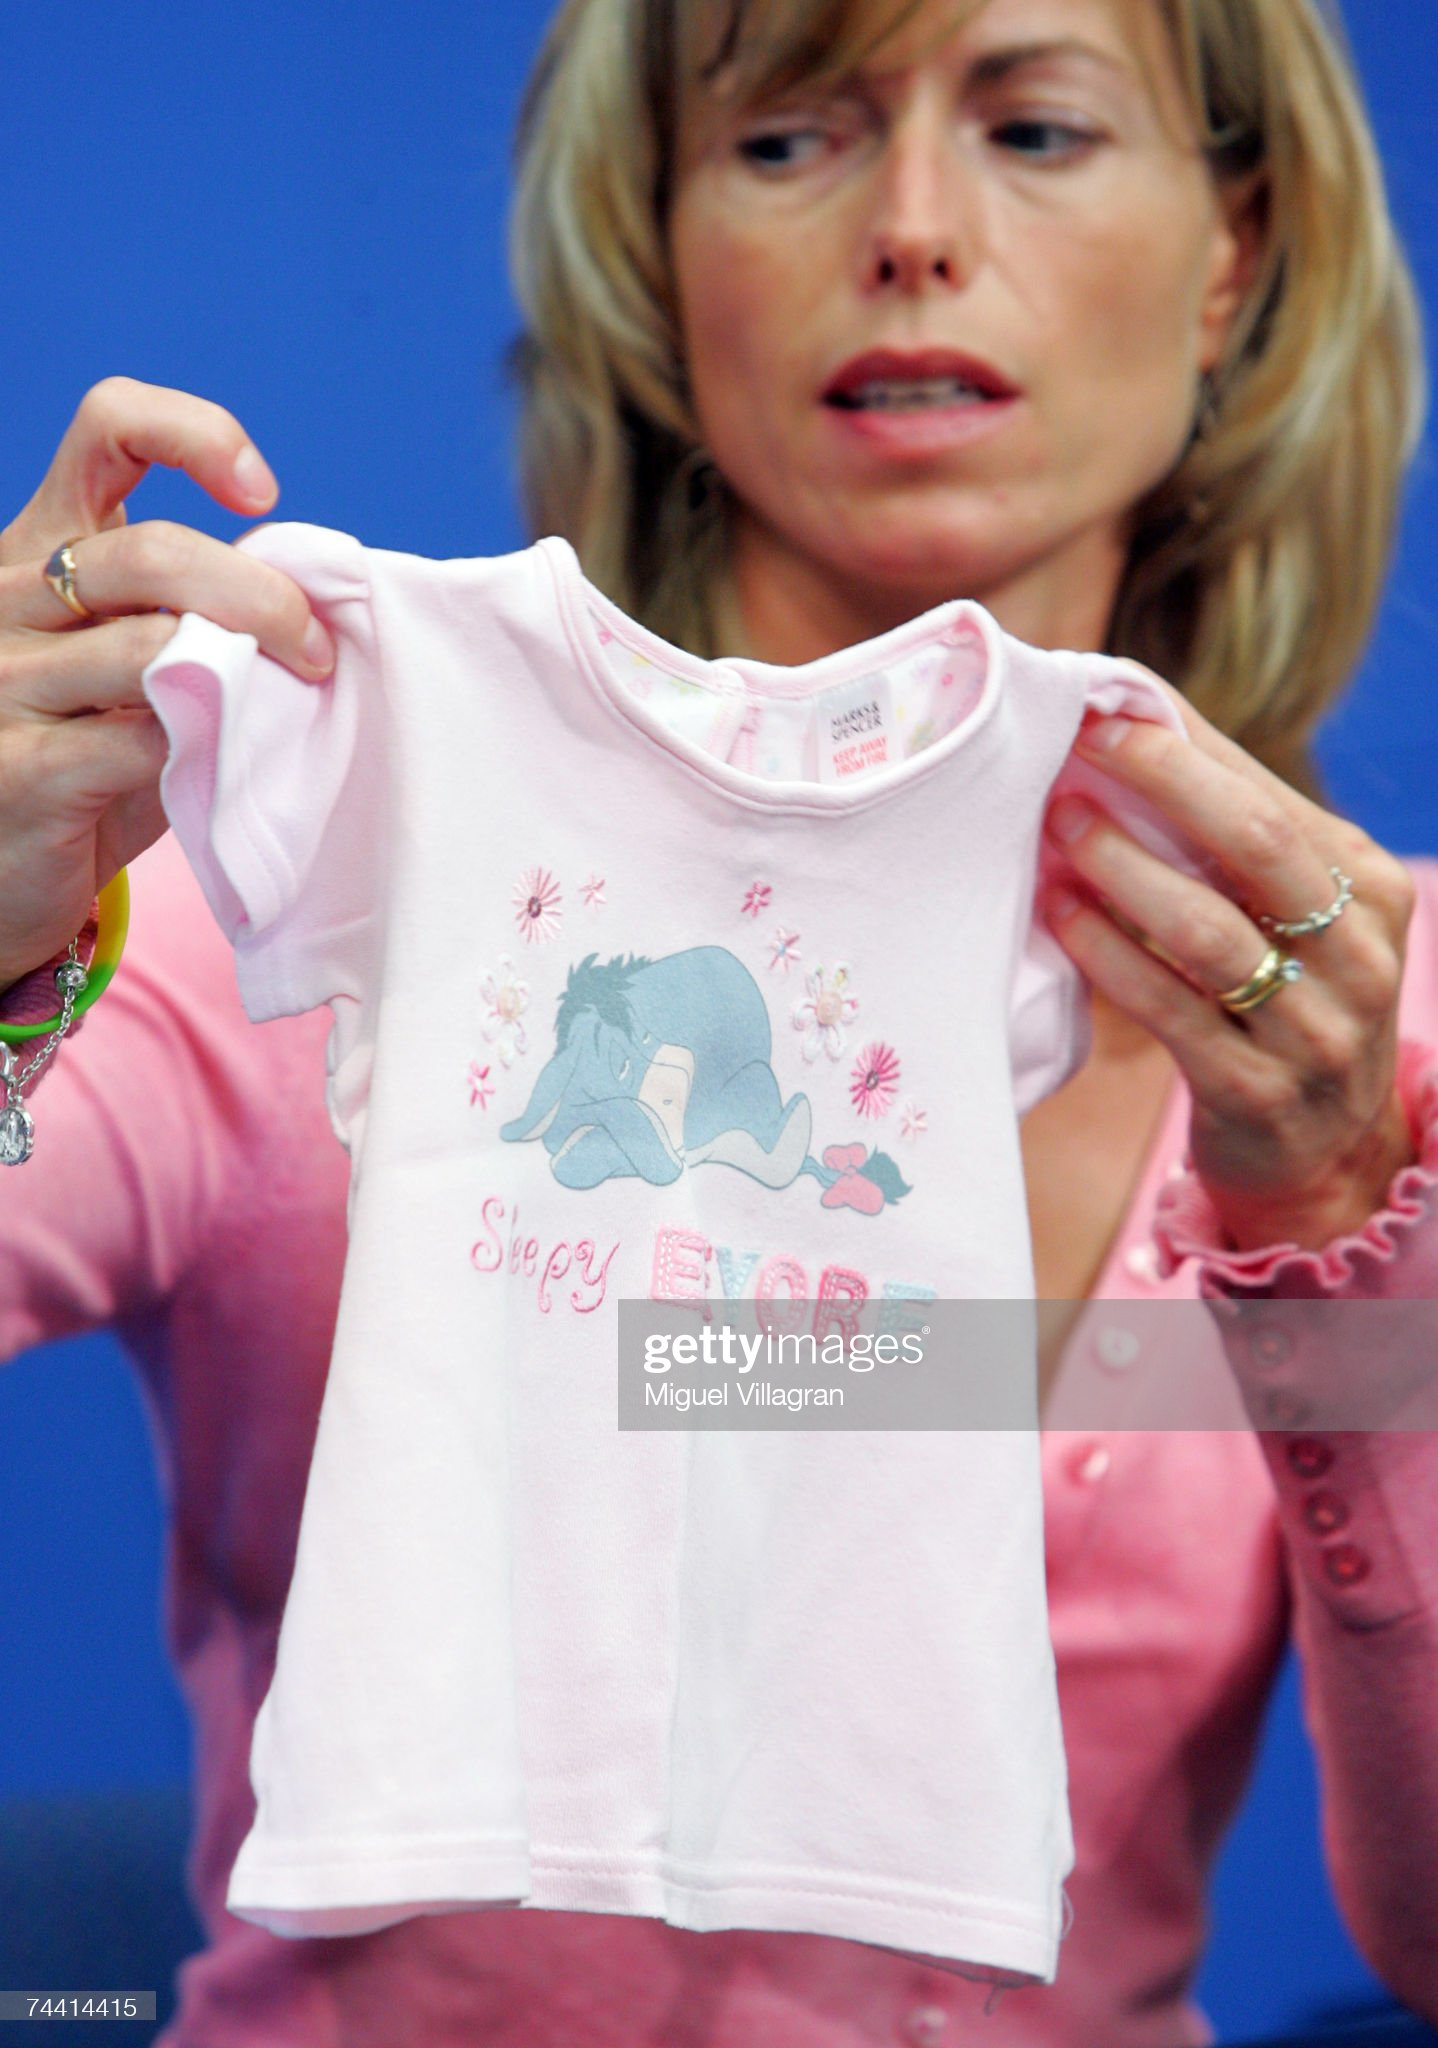 Dr Martin Roberts - 'A Nightwear Job' - Page 15 Kate-mccann-the-mother-of-the-missing-4yearold-british-girl-madeleine-picture-id74414415?s=2048x2048